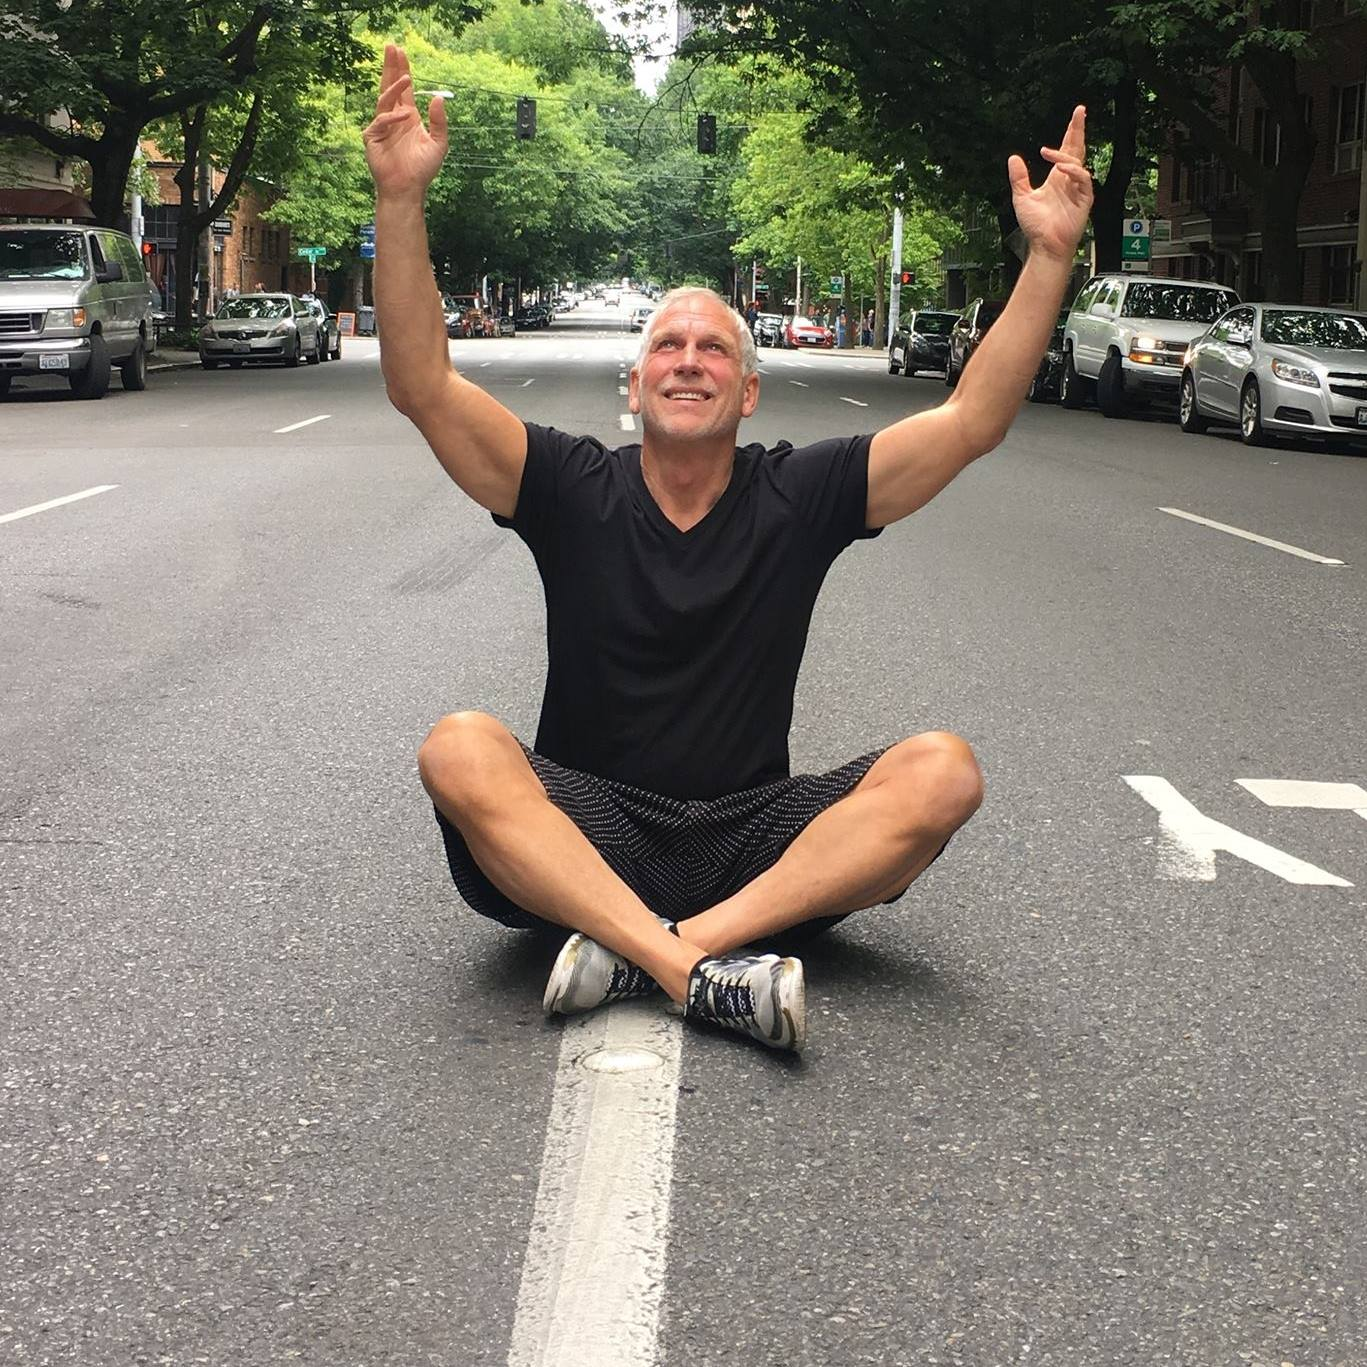 Life Athlete - Peter Shmock is one of the few people who truly embodies what they preach. A 2x-Olympian, an innovator, a coach, an author, and a friend, Peter is a leading voice for our movement, spreading the practice of making movement part of a sustainable and joyous life. Check him out in his own words, here: http://lifeathlete.com/